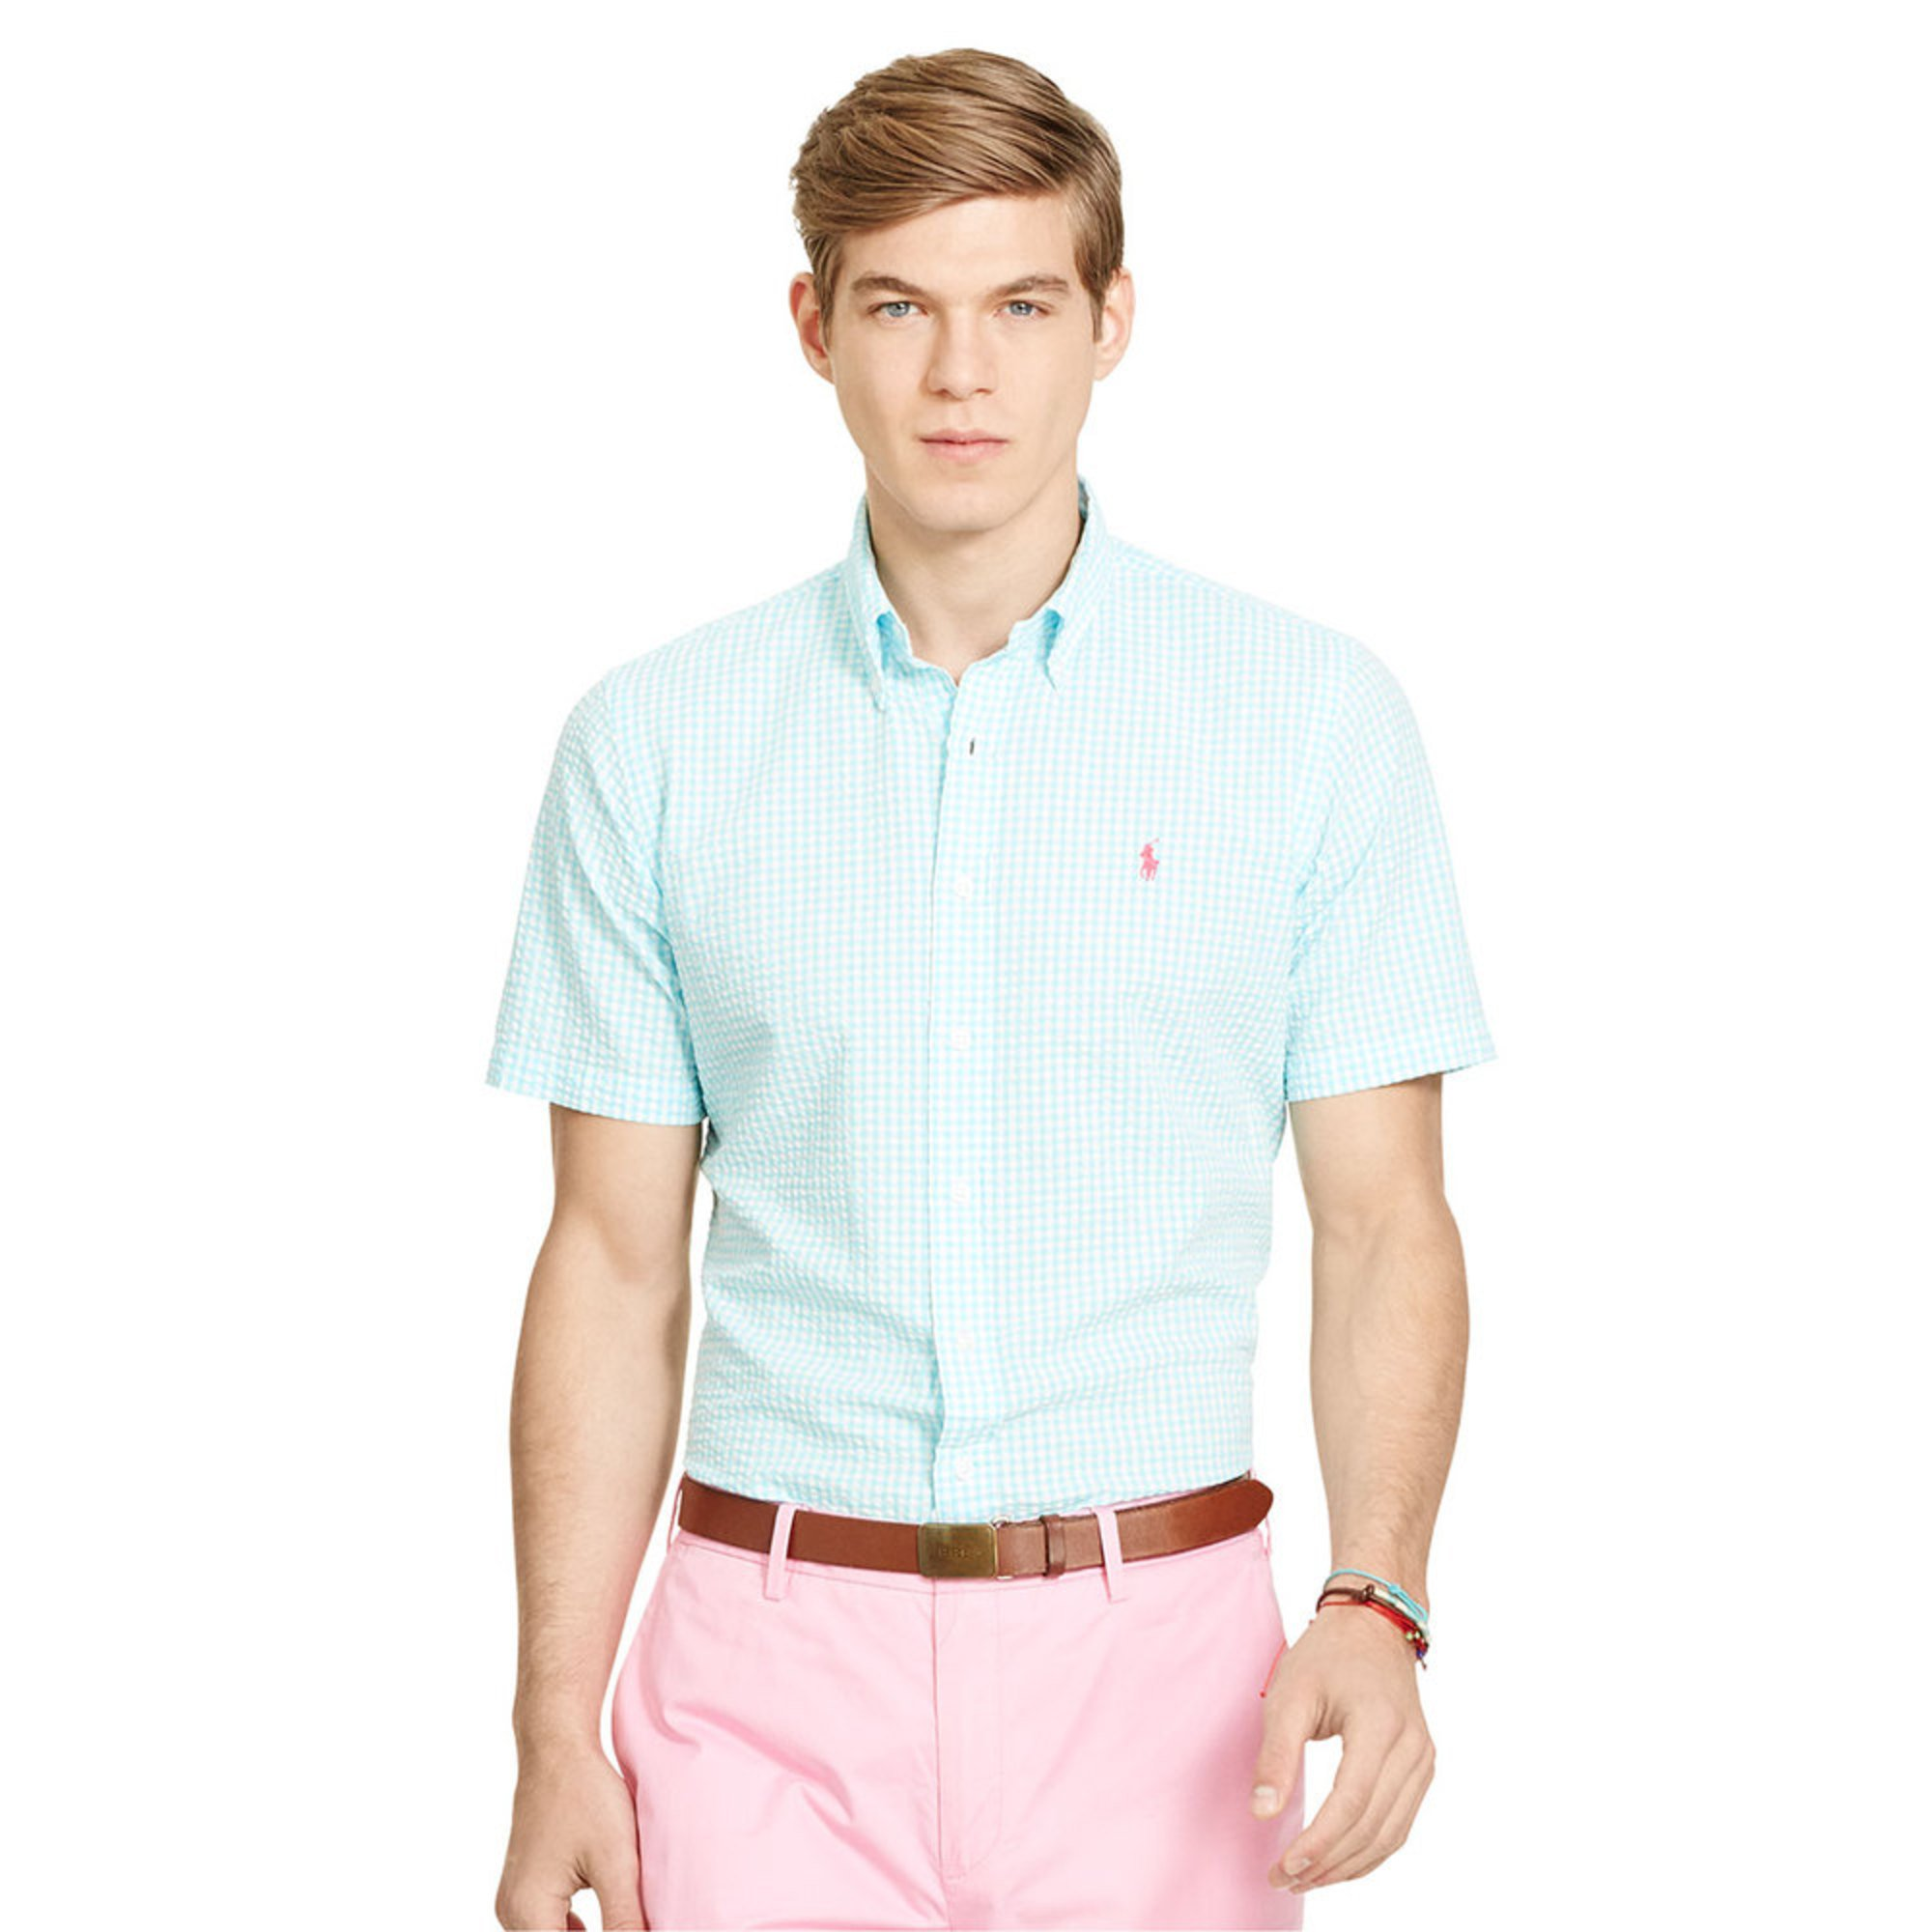 Polo ralph lauren men 39 s seersucker short sleeve shirt for Mens short sleeve seersucker shirts